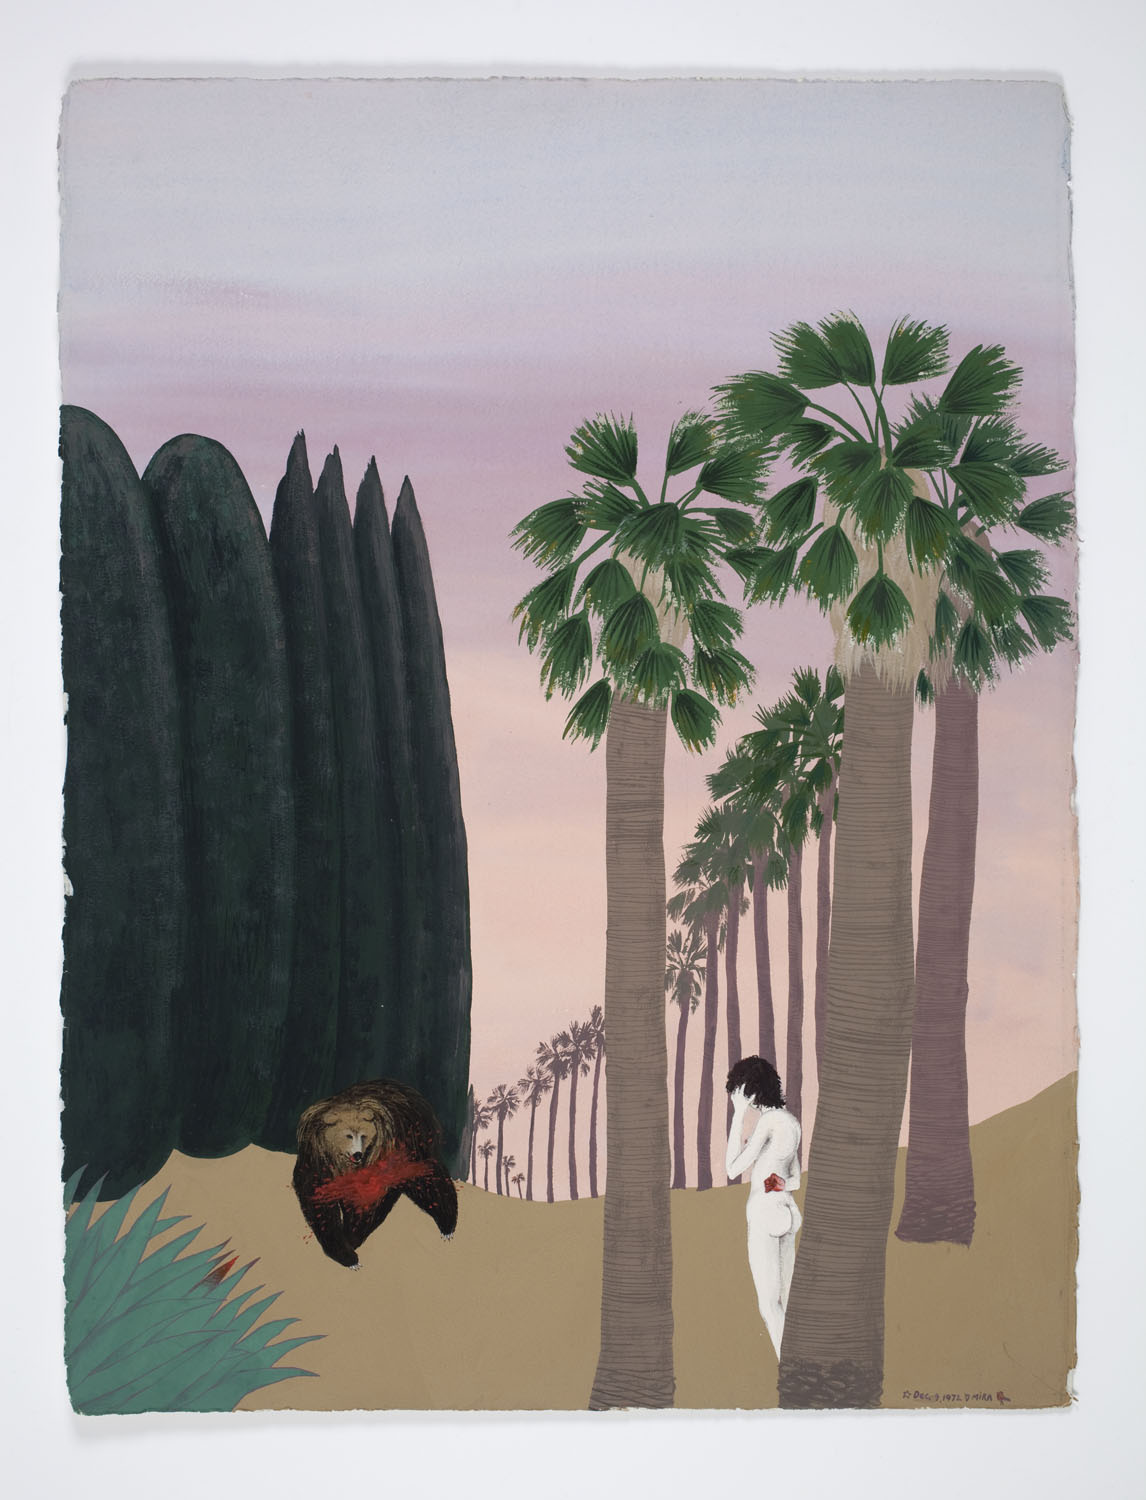 Mira Schor   Bear Triptych (Part II) , December 1972  Gouache on Arches paper  30 x 22 inches